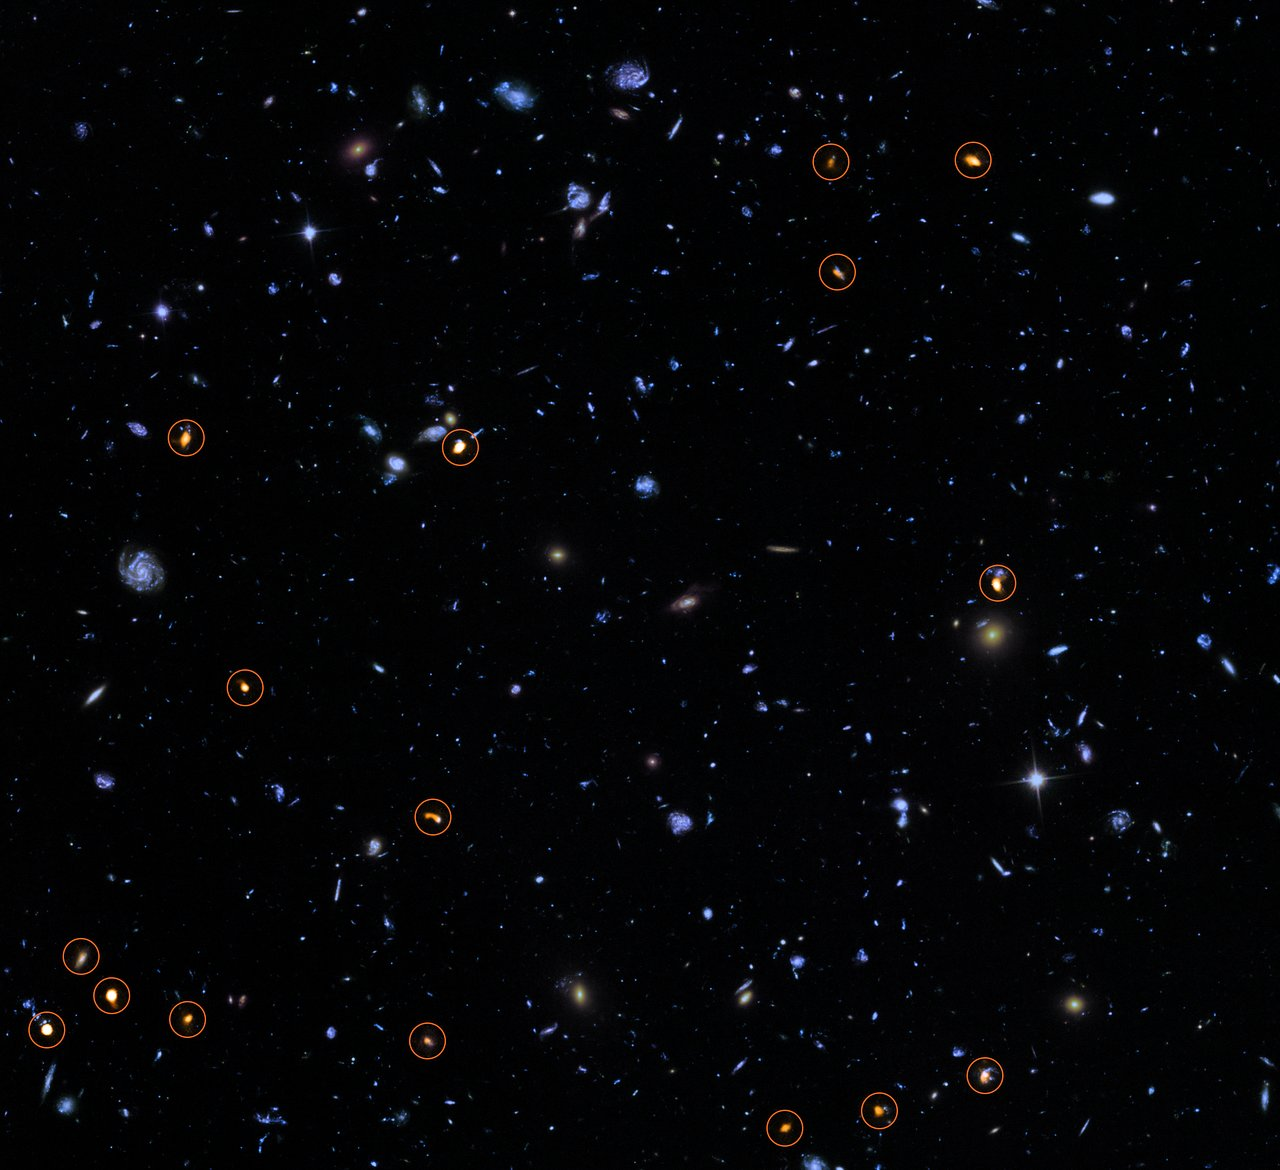 alma explores the hubble